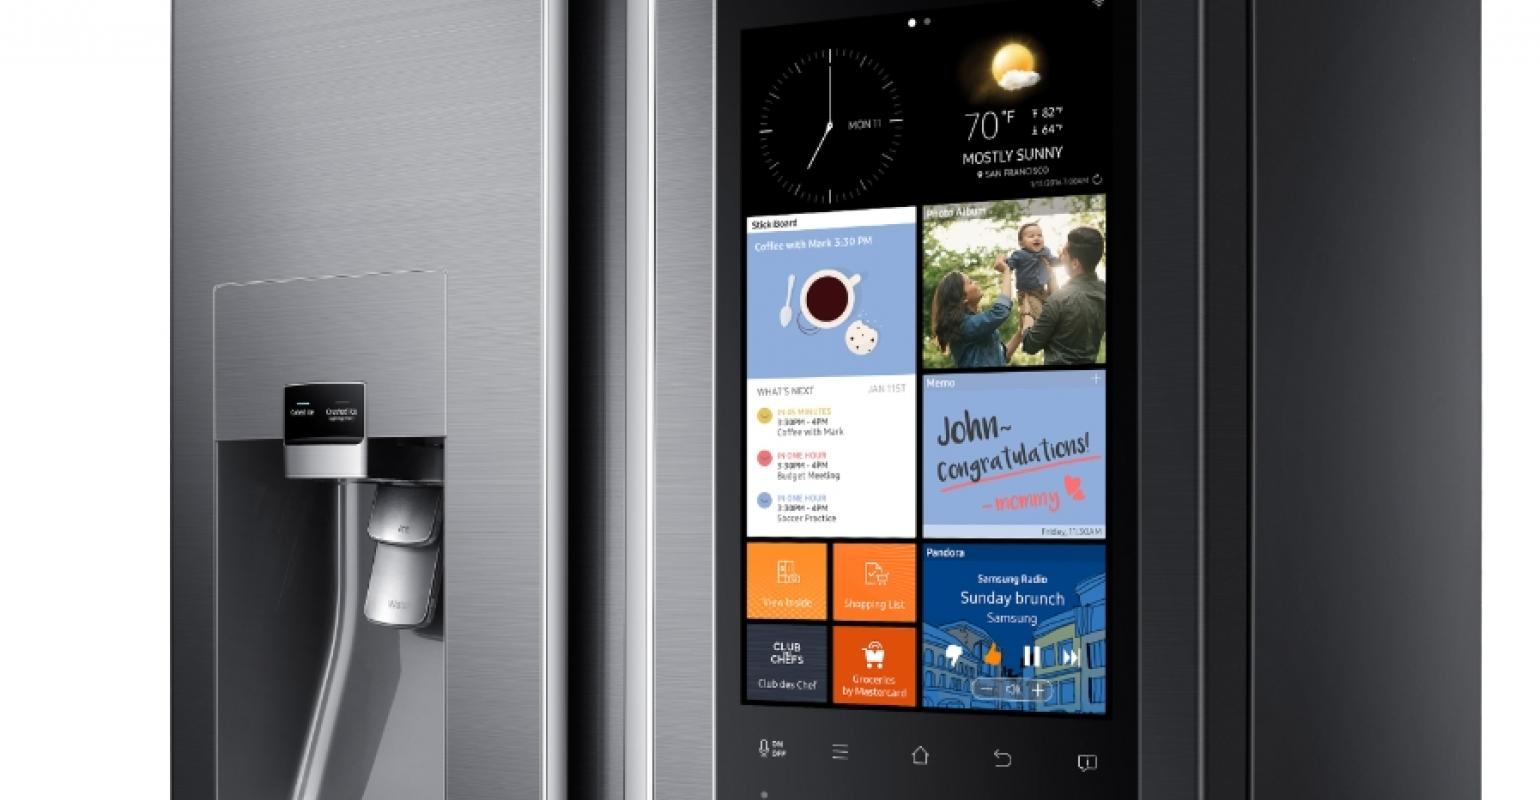 large appliances have a new touch